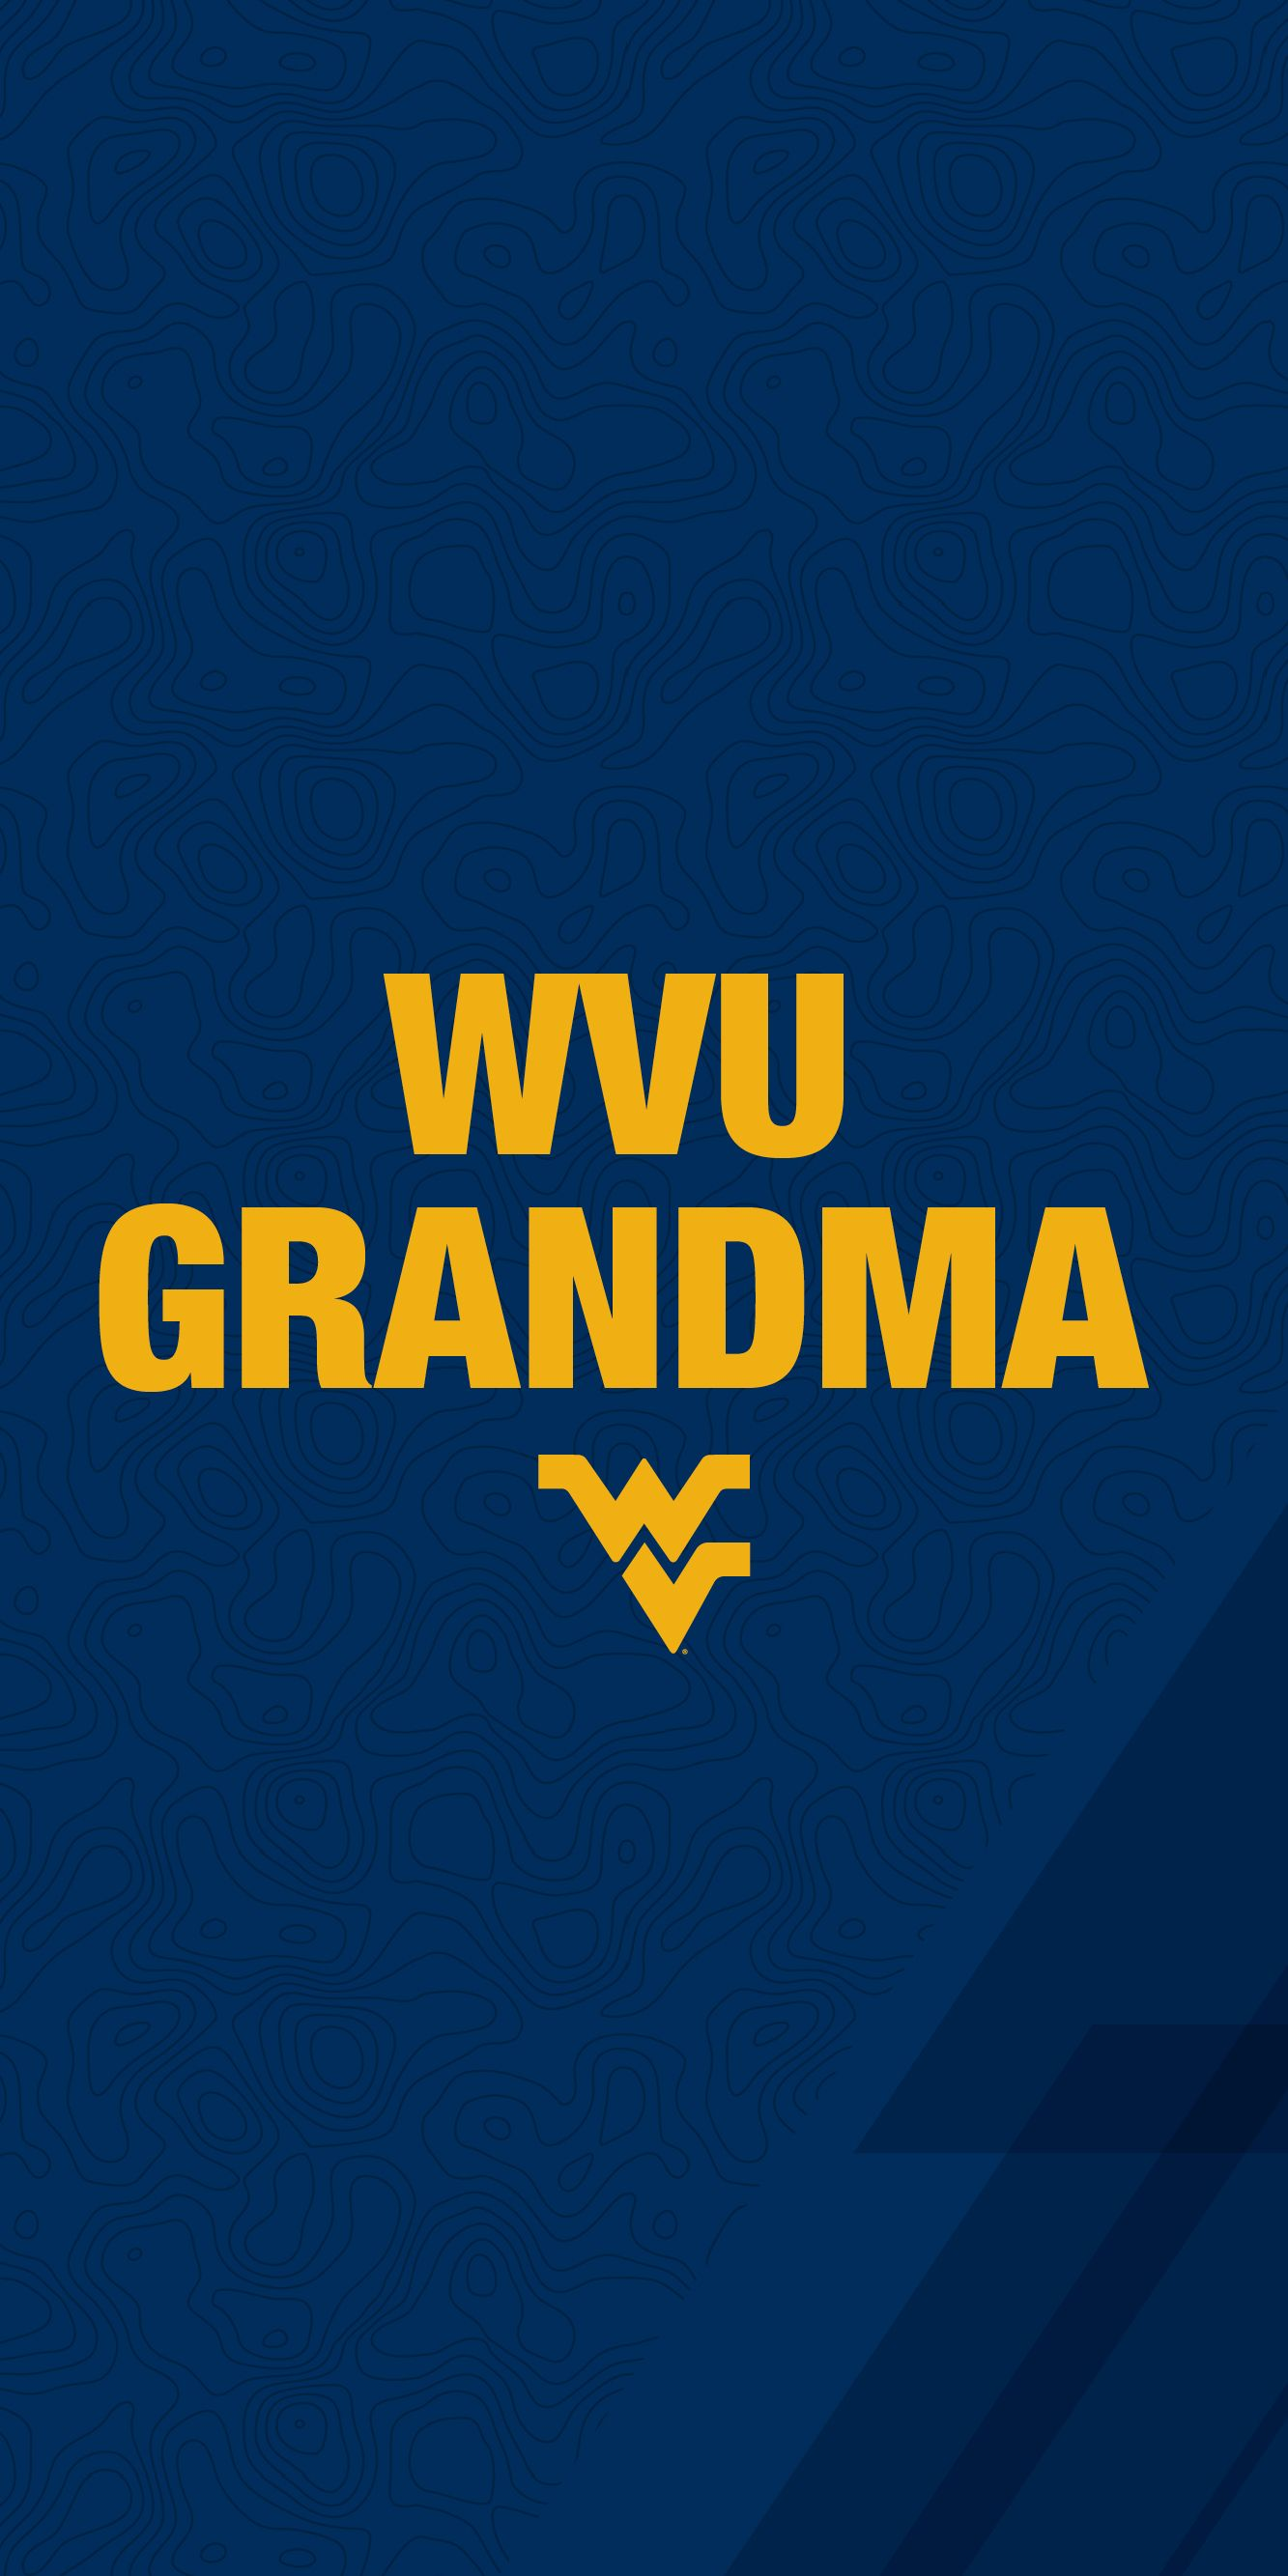 WVU Grandma mobile wallpaper